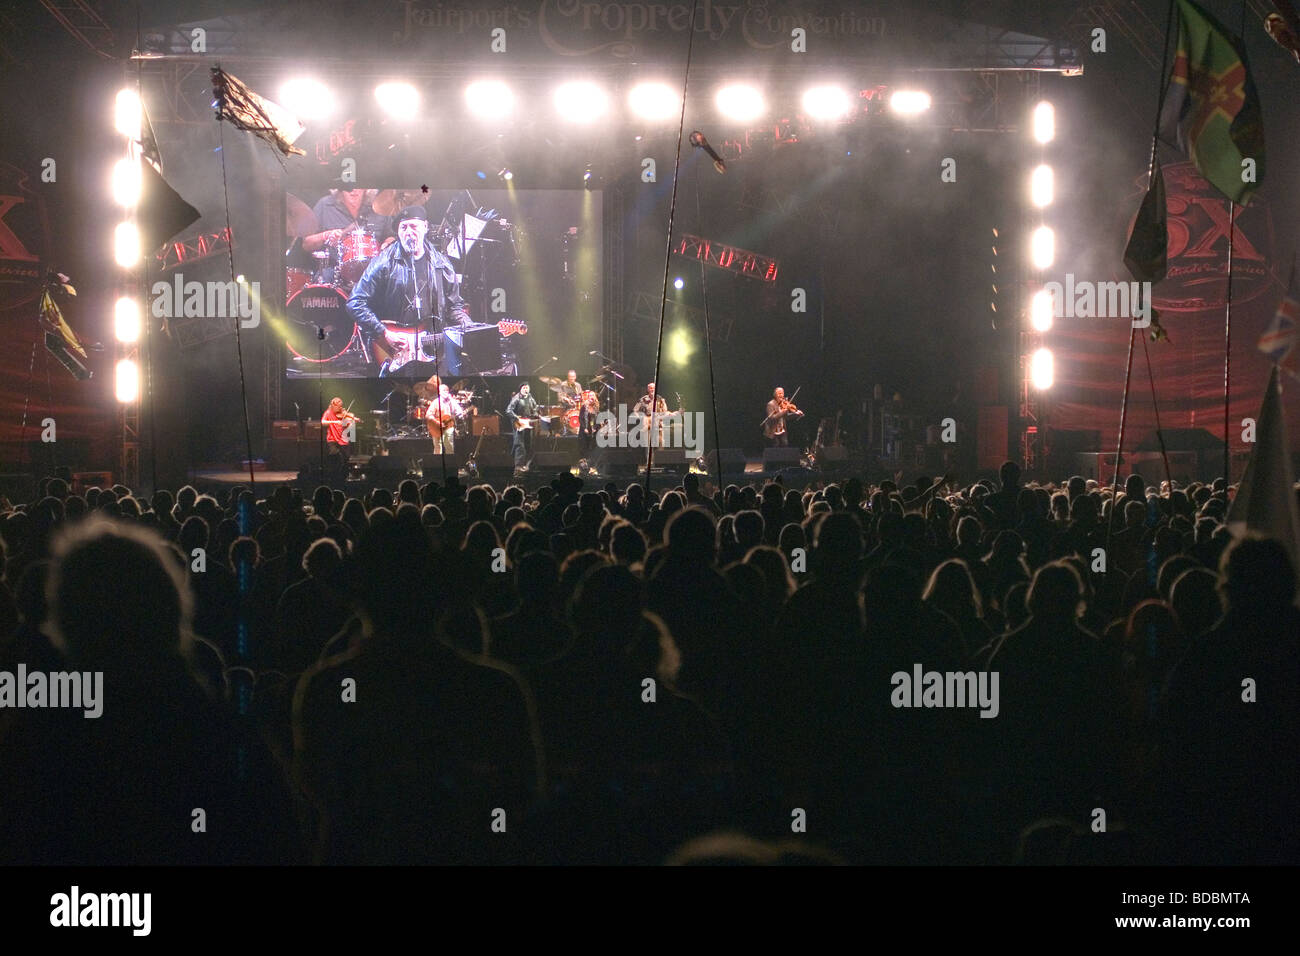 Richard Thompson playing at Fairport s Cropredy Convention friendly music festive near Banbury Oxfordshire on the - Stock Image